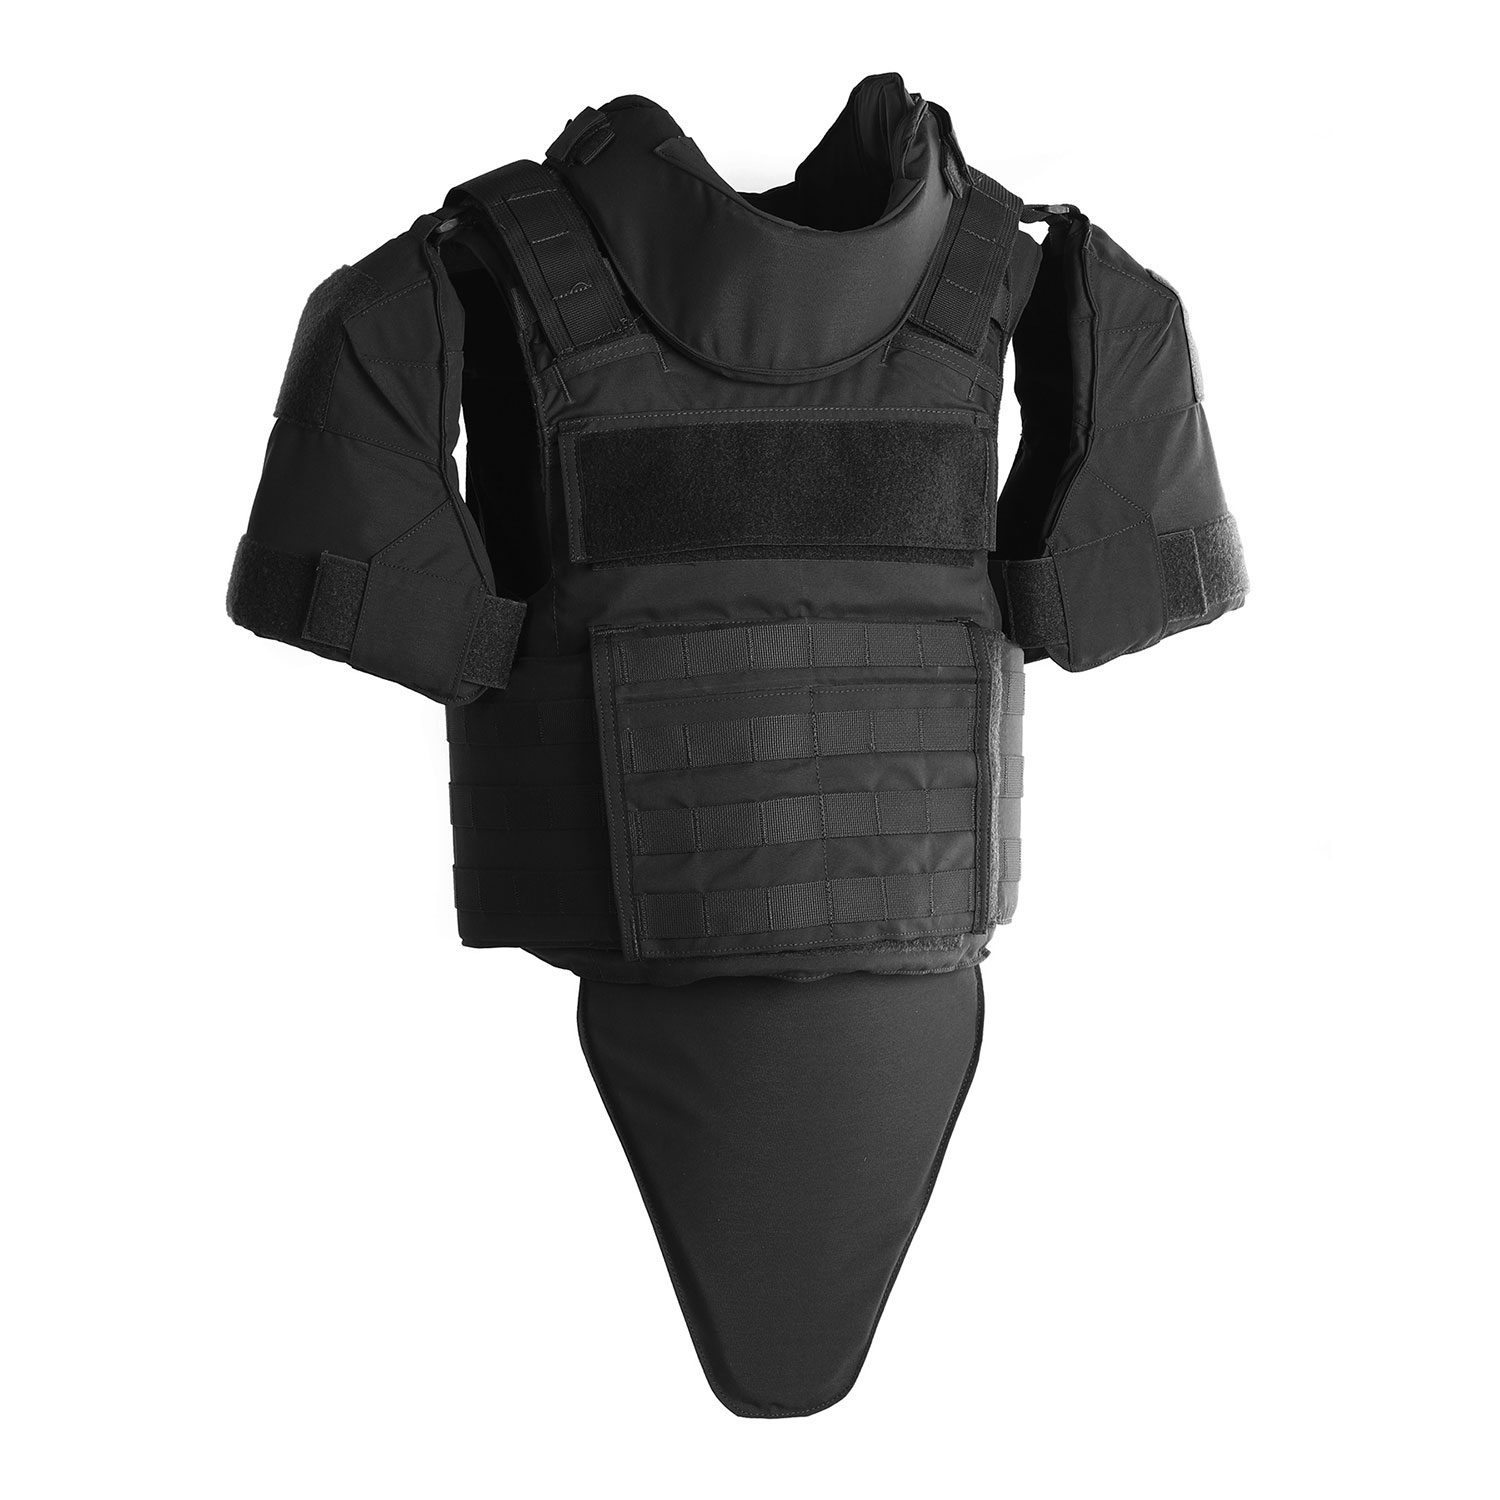 Galls G-TAC SMG 2 Complete Level IIIA Tactical Vest